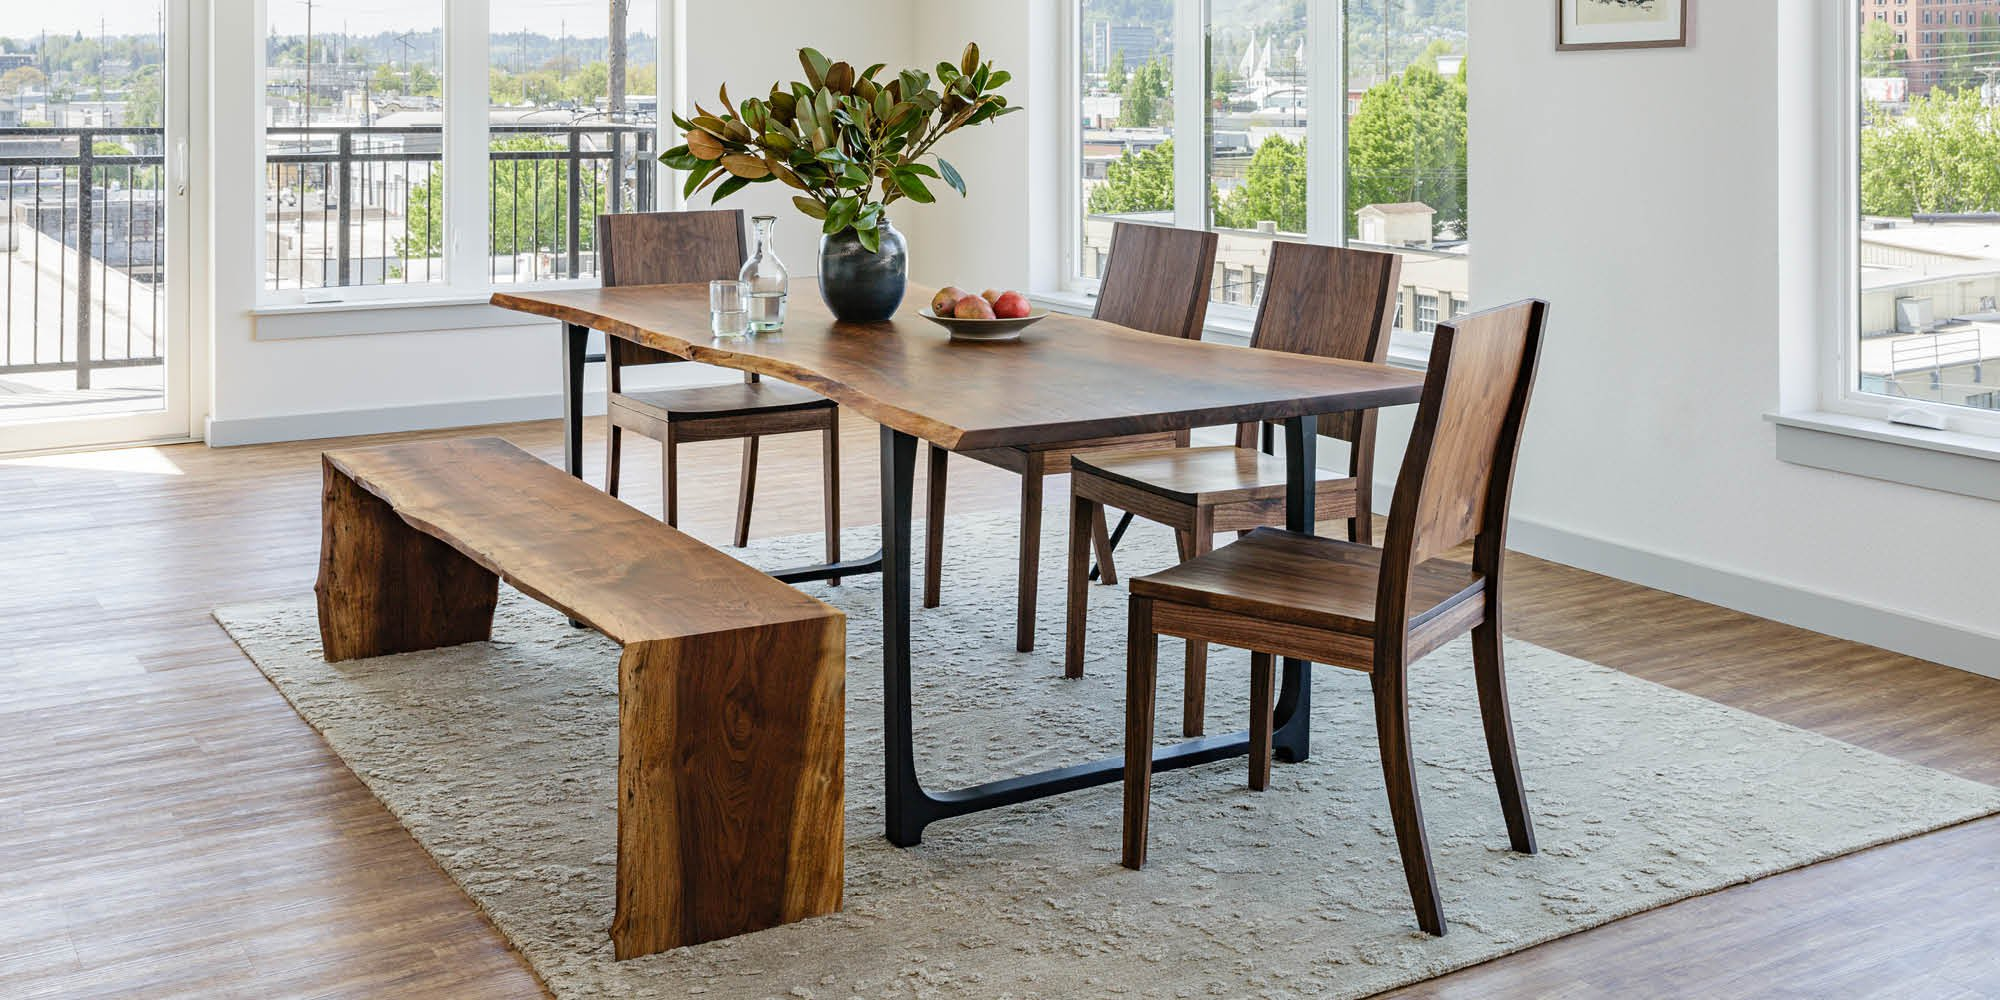 Solid Wood Furniture Handcrafted In Portland Oregon The